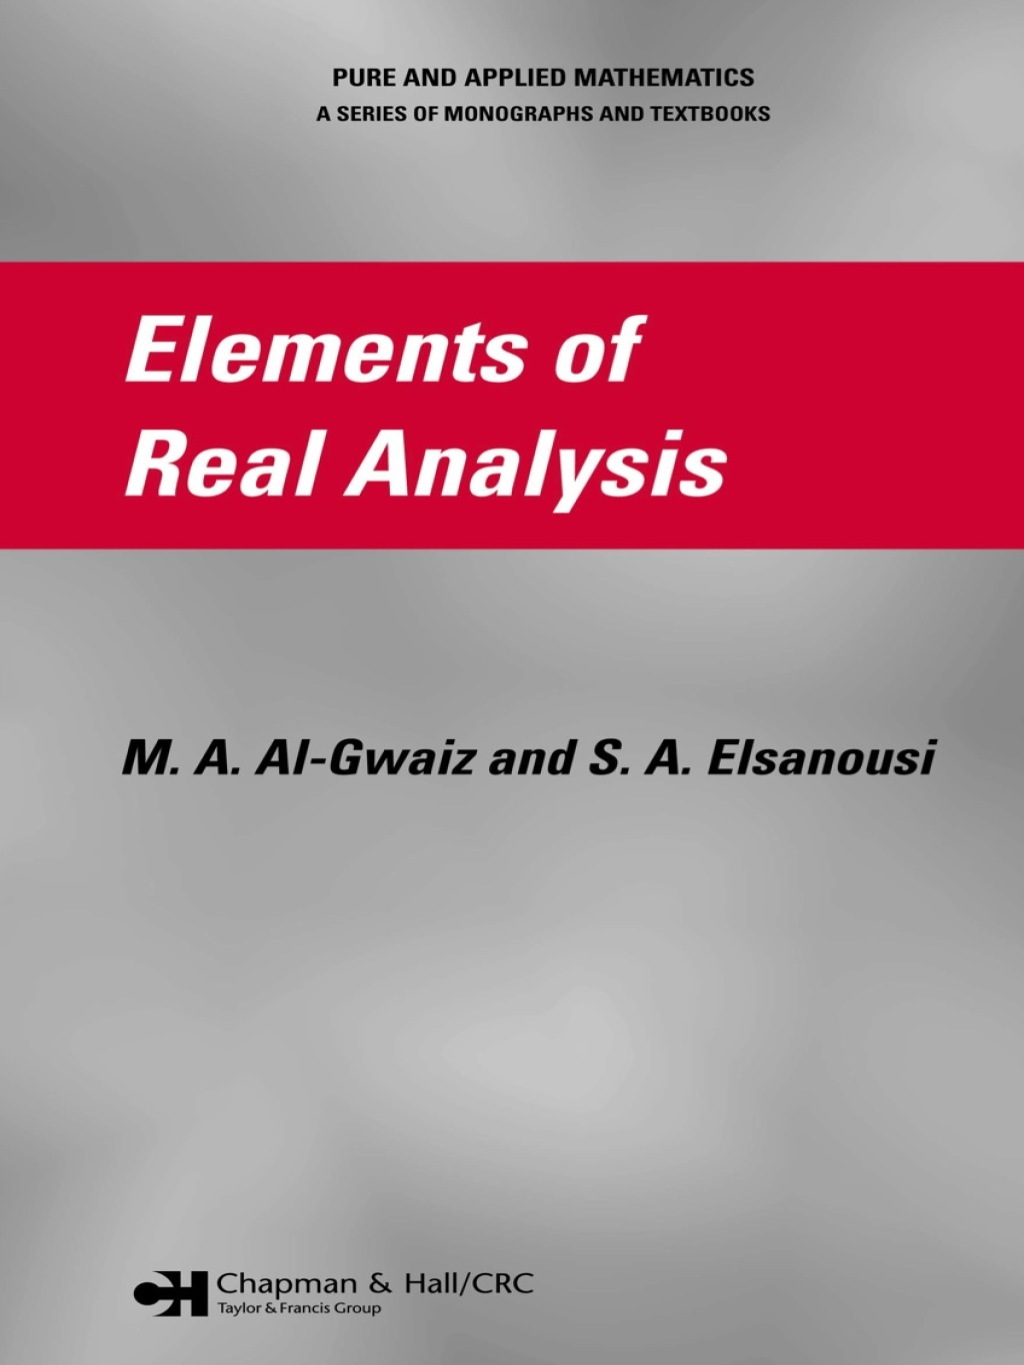 Elements of Real Analysis (ebook) eBooks